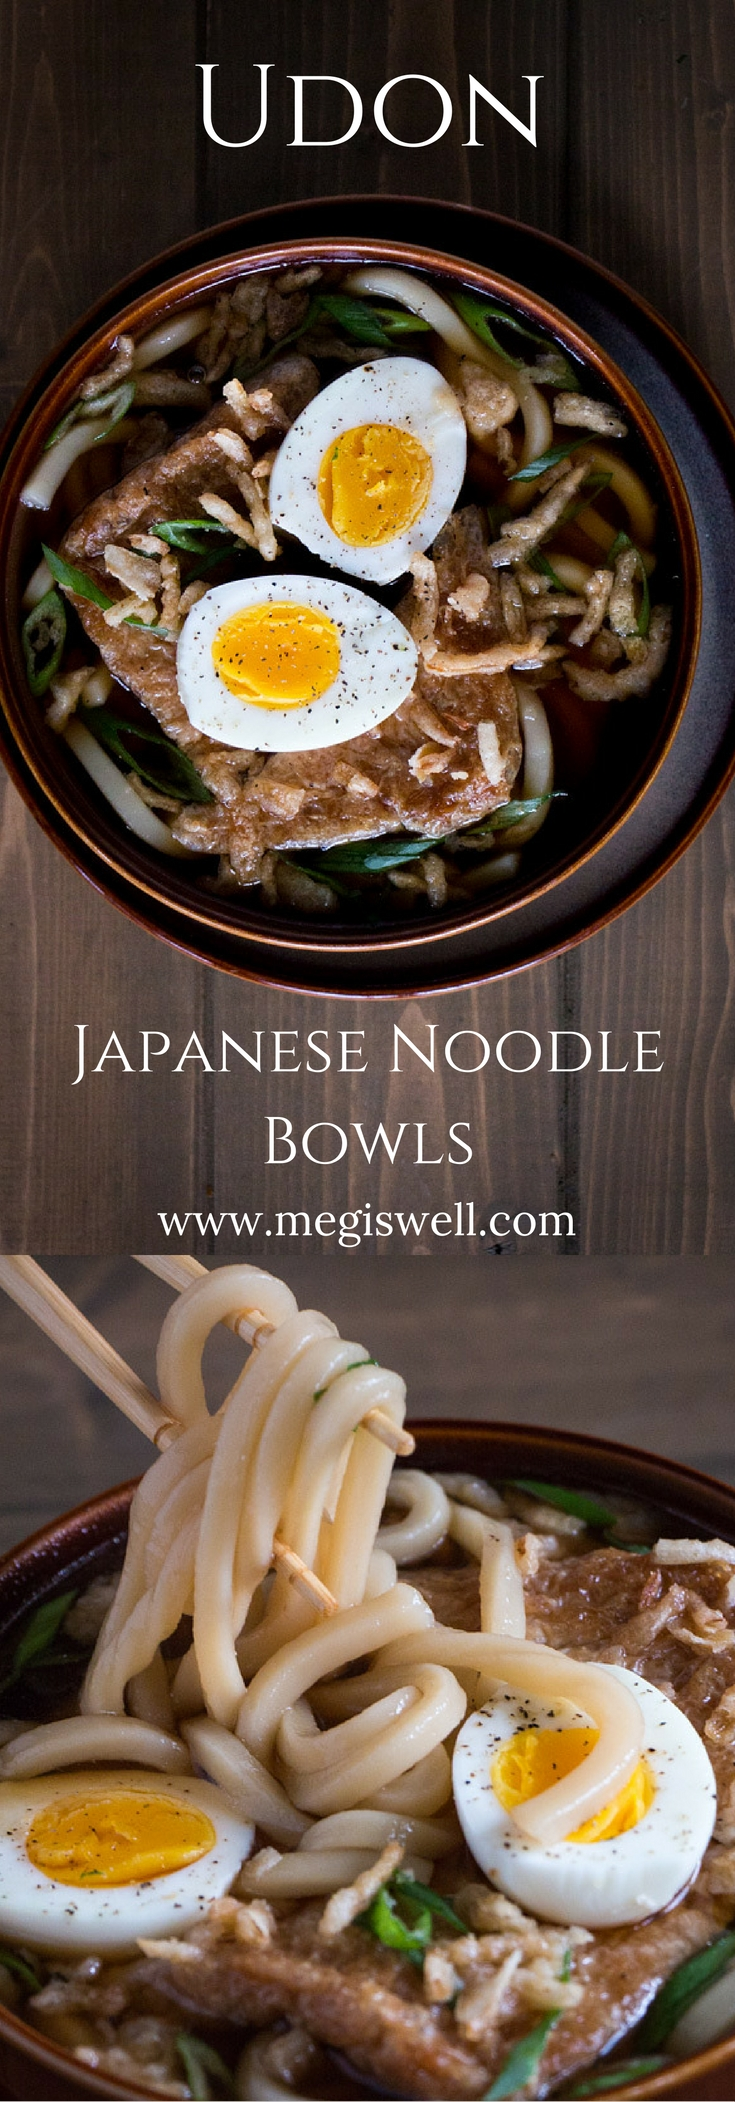 Udon is a simple combination of fat bouncy noodles and broth made from dried kelp and dried smoked tuna that creates a fast and easy meal full of umami flavor. | www.megiswell.com